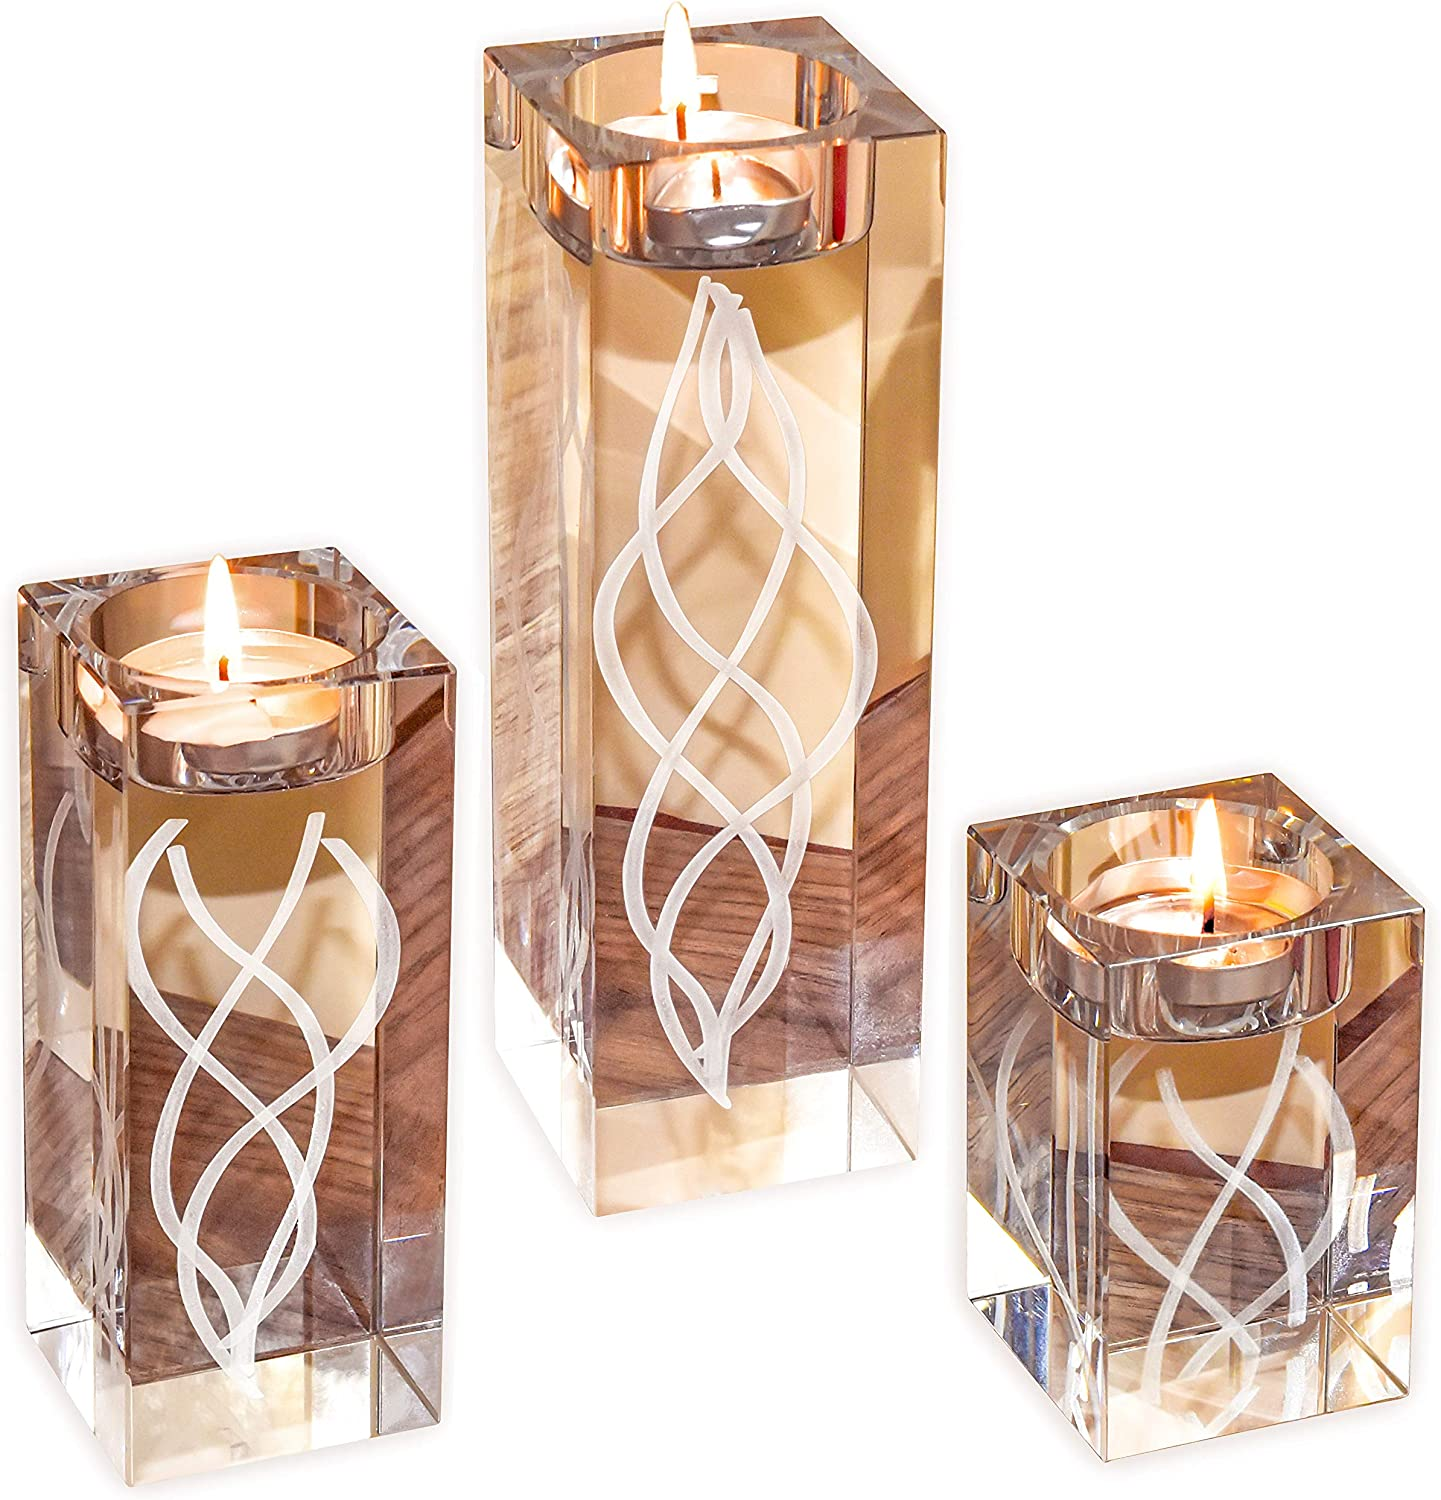 Le Sens Amazing Home Engraved Large Crystal Candle Holder Set of 3¦6.2/4.7/3.1 Inches H¦Solid Clear Glass Decoration¦Luxurious Elegant Pillar & Votive Tealight Table Centerpiece¦Wedding & Home Décor